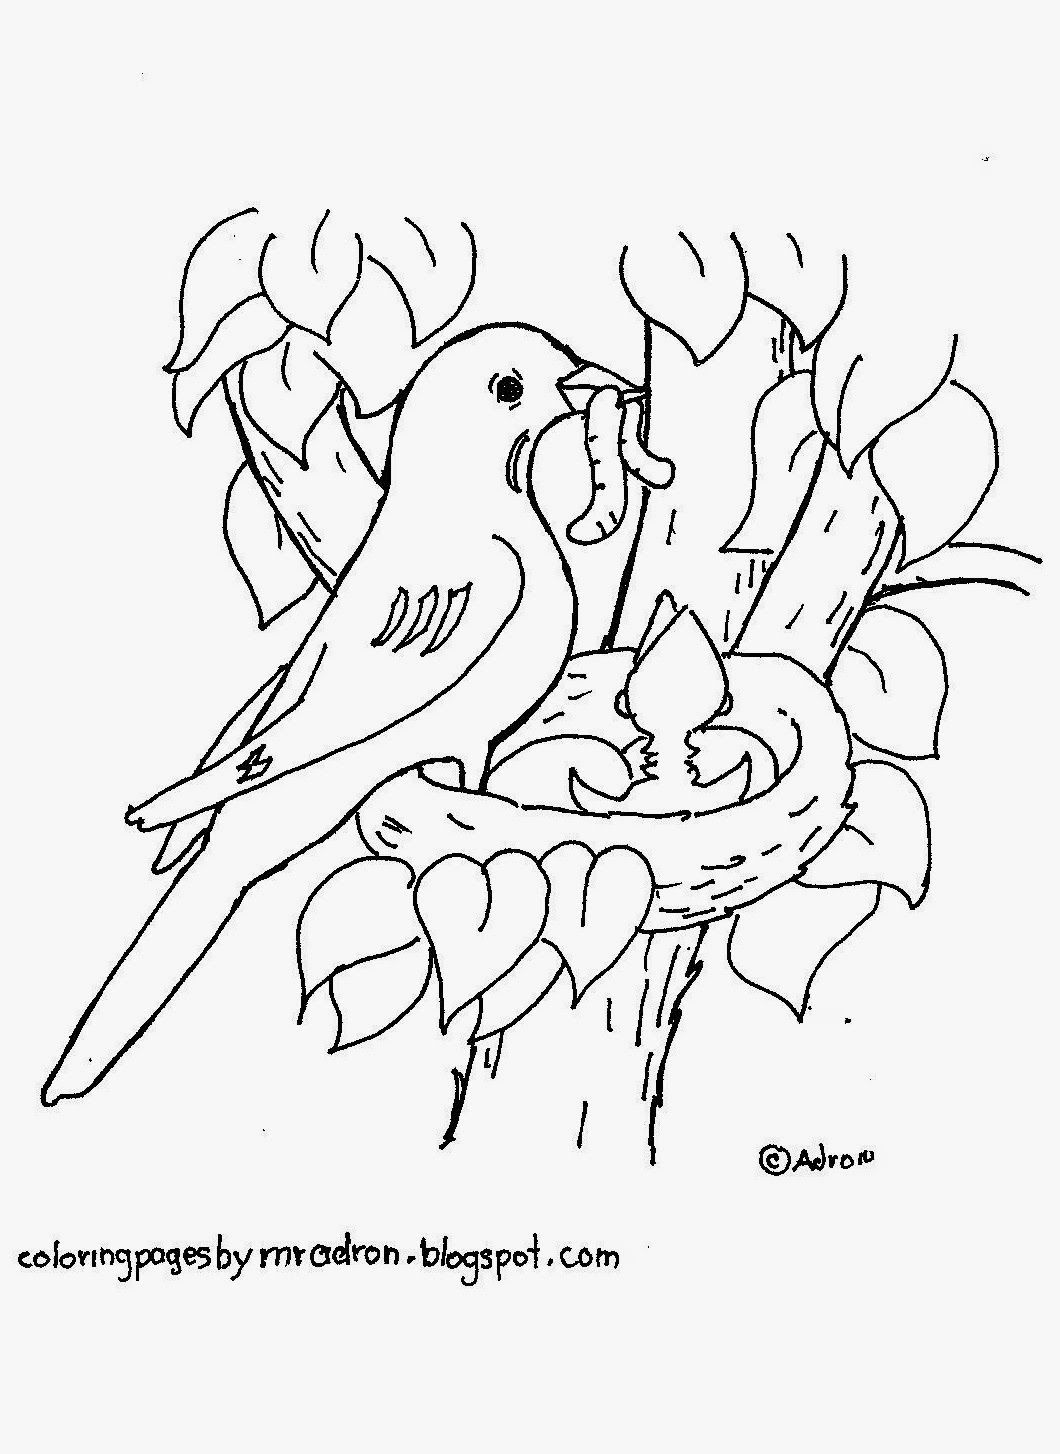 A Free Coloring Page Of A Bird See More At My Blog Http Coloringpagesbymradron Blogspot Com Bird Coloring Pages Owl Coloring Pages Puppy Coloring Pages